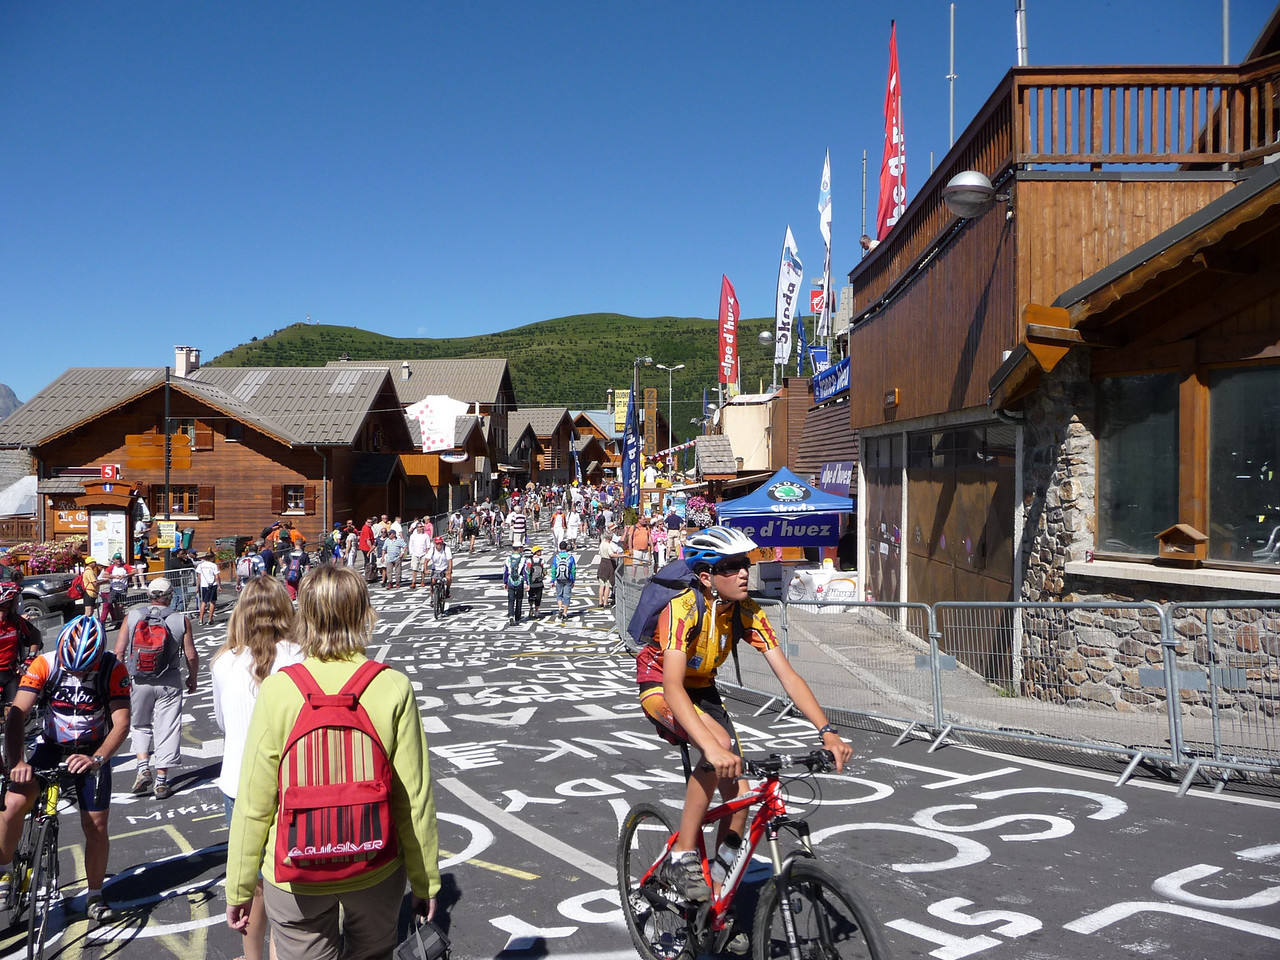 The roads were covered in messages to riders. Location - Alpe d'Huez